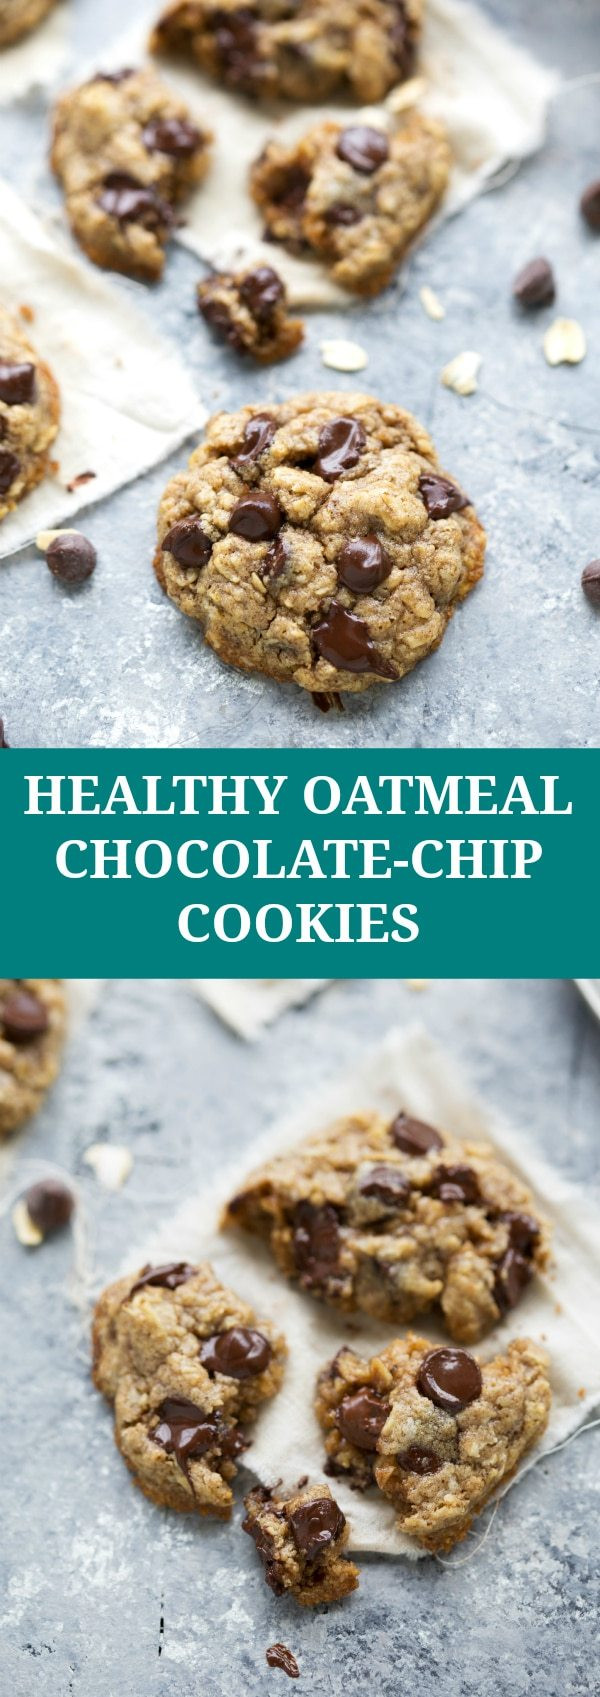 Healthy Oatmeal Cookies No Flour  The BEST healthy oatmeal chocolate chip cookies Chelsea